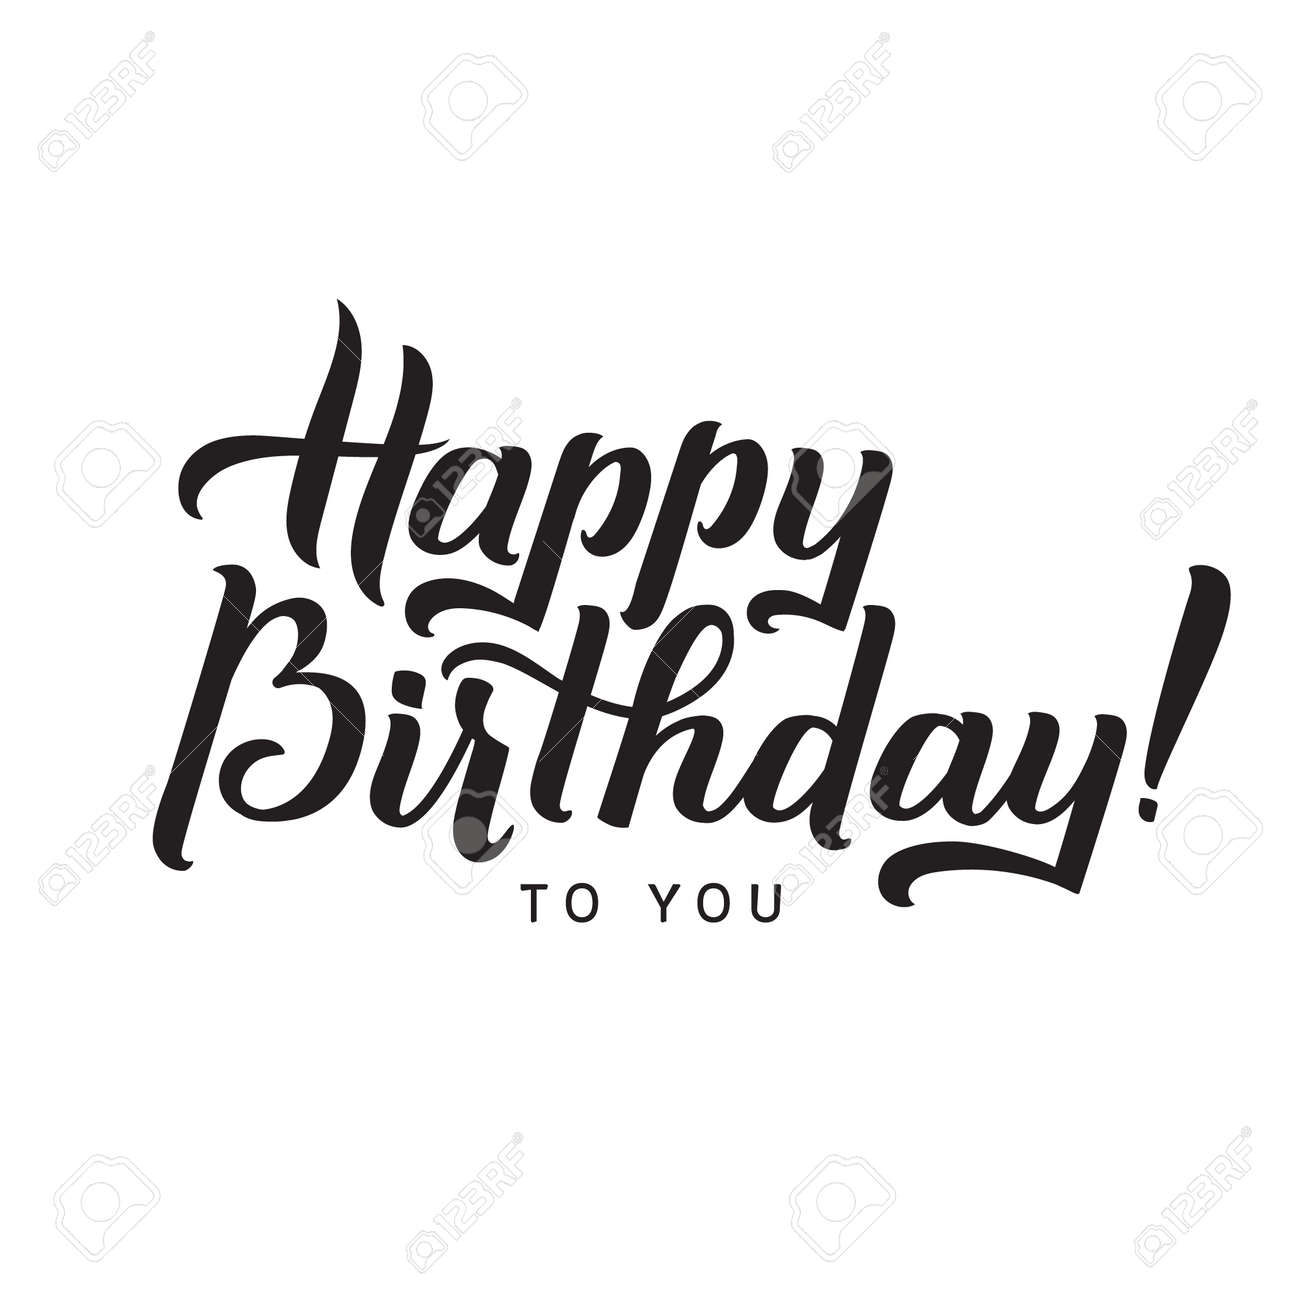 Happy Birthday to You Calligraphy Greeting Card. Hand Lettering - calligraphy, design. - 60379106